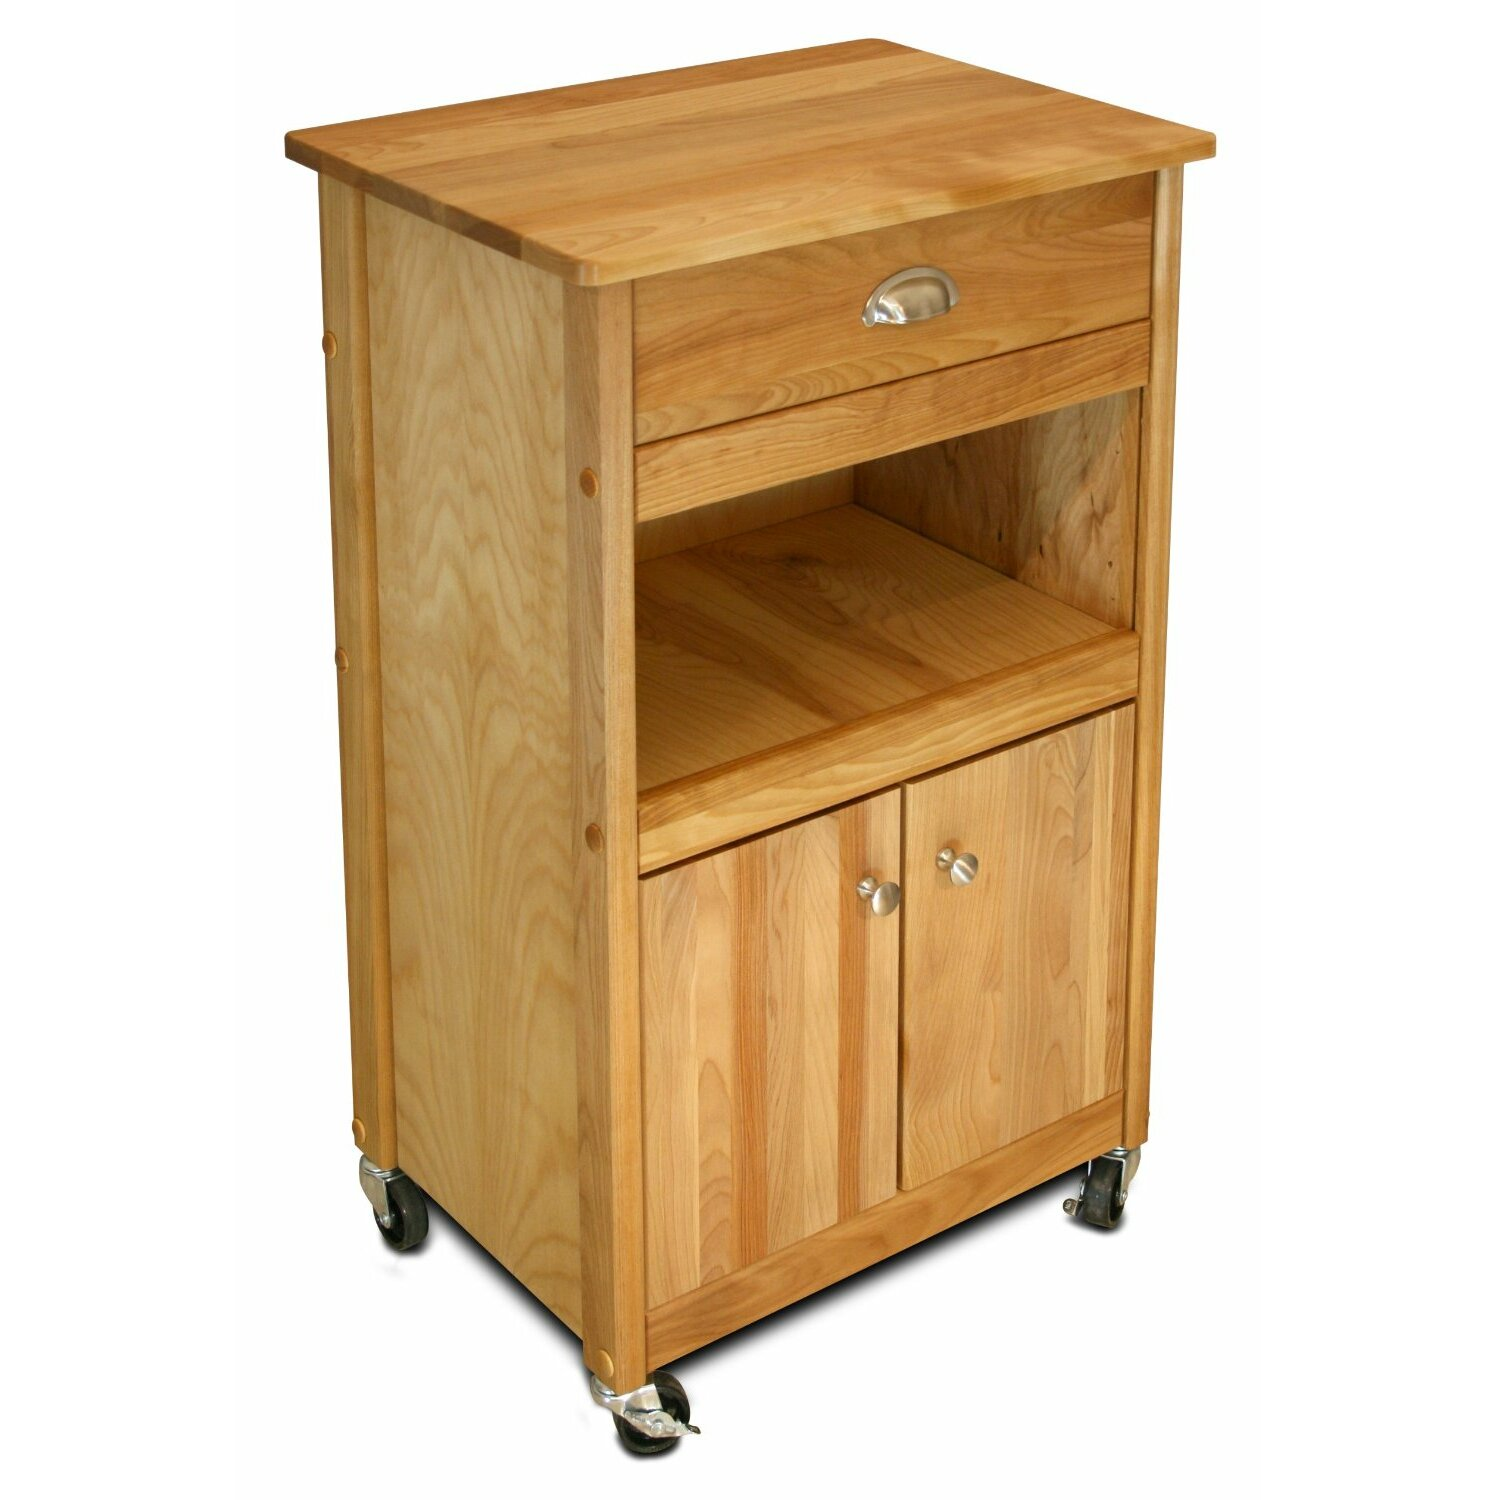 Butcher Block Kitchen Islands For Sale